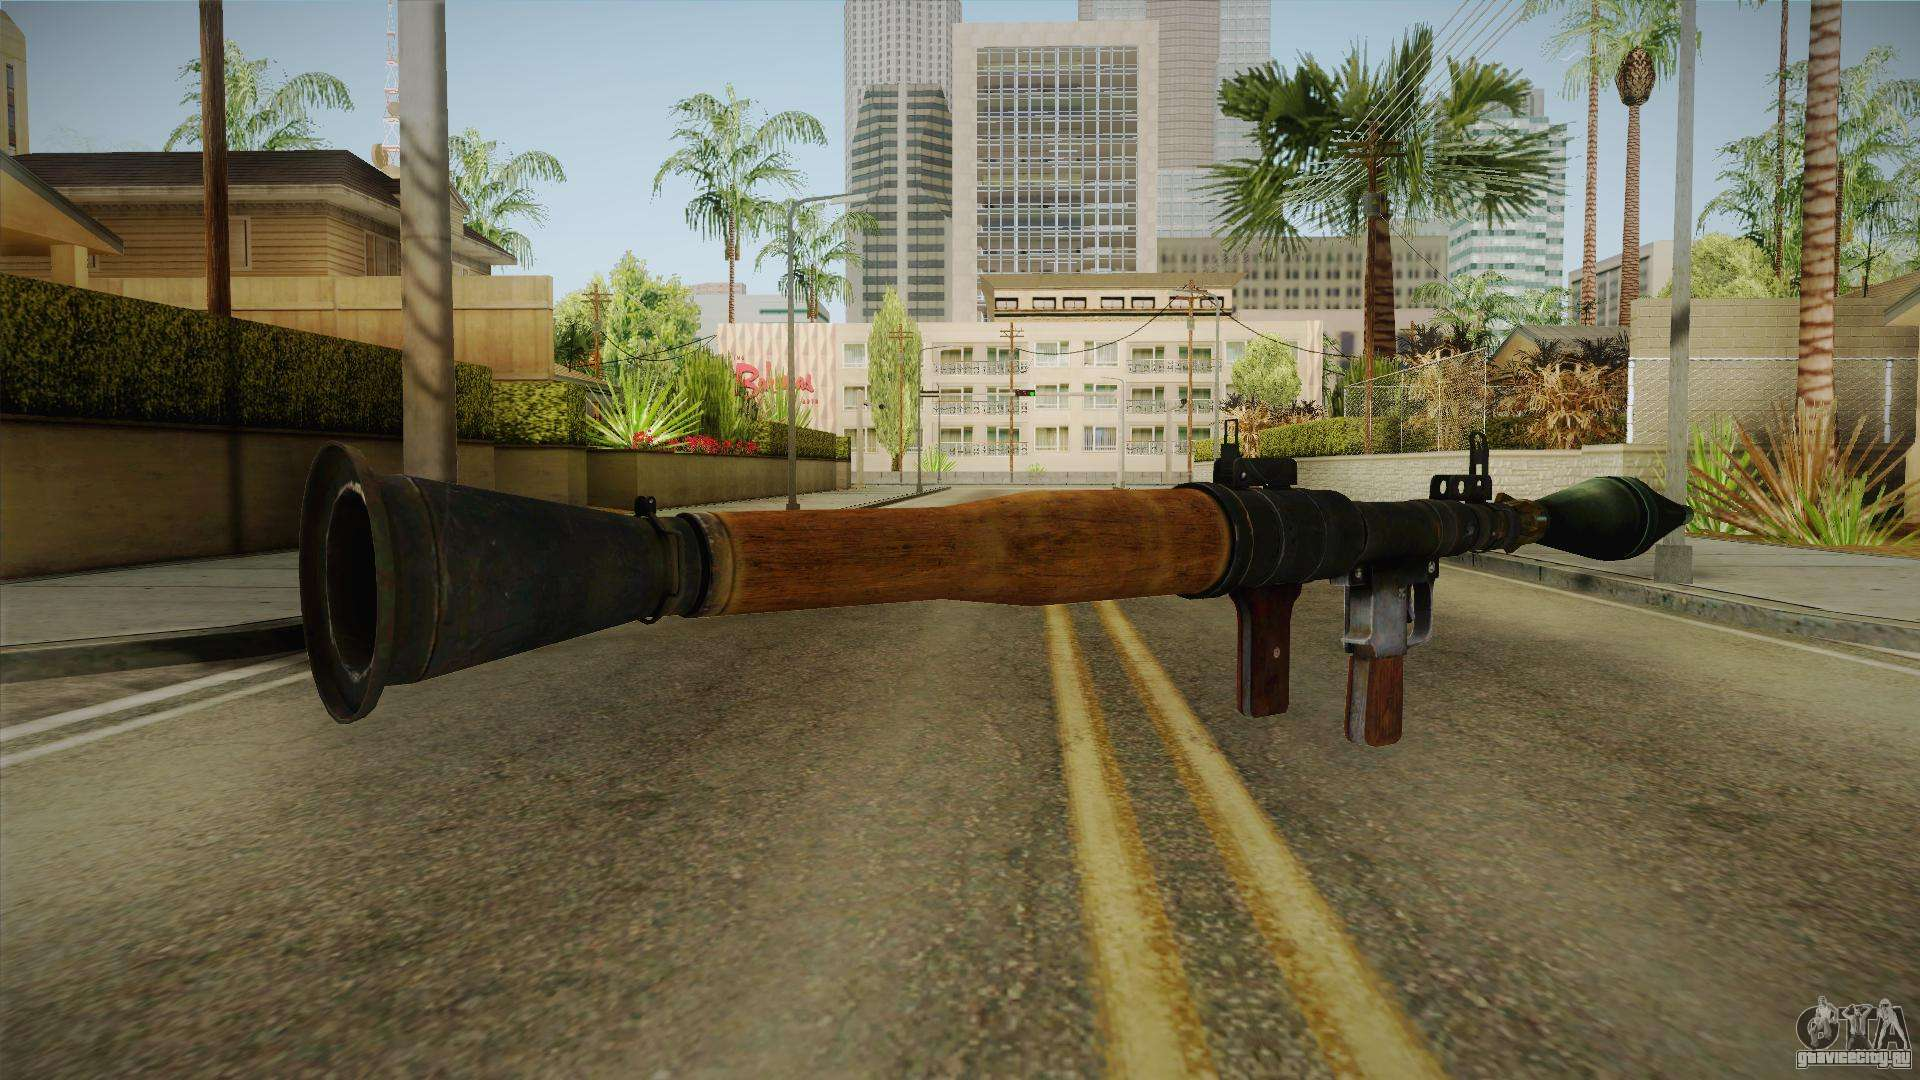 how to get a rocket launcher in gta 5